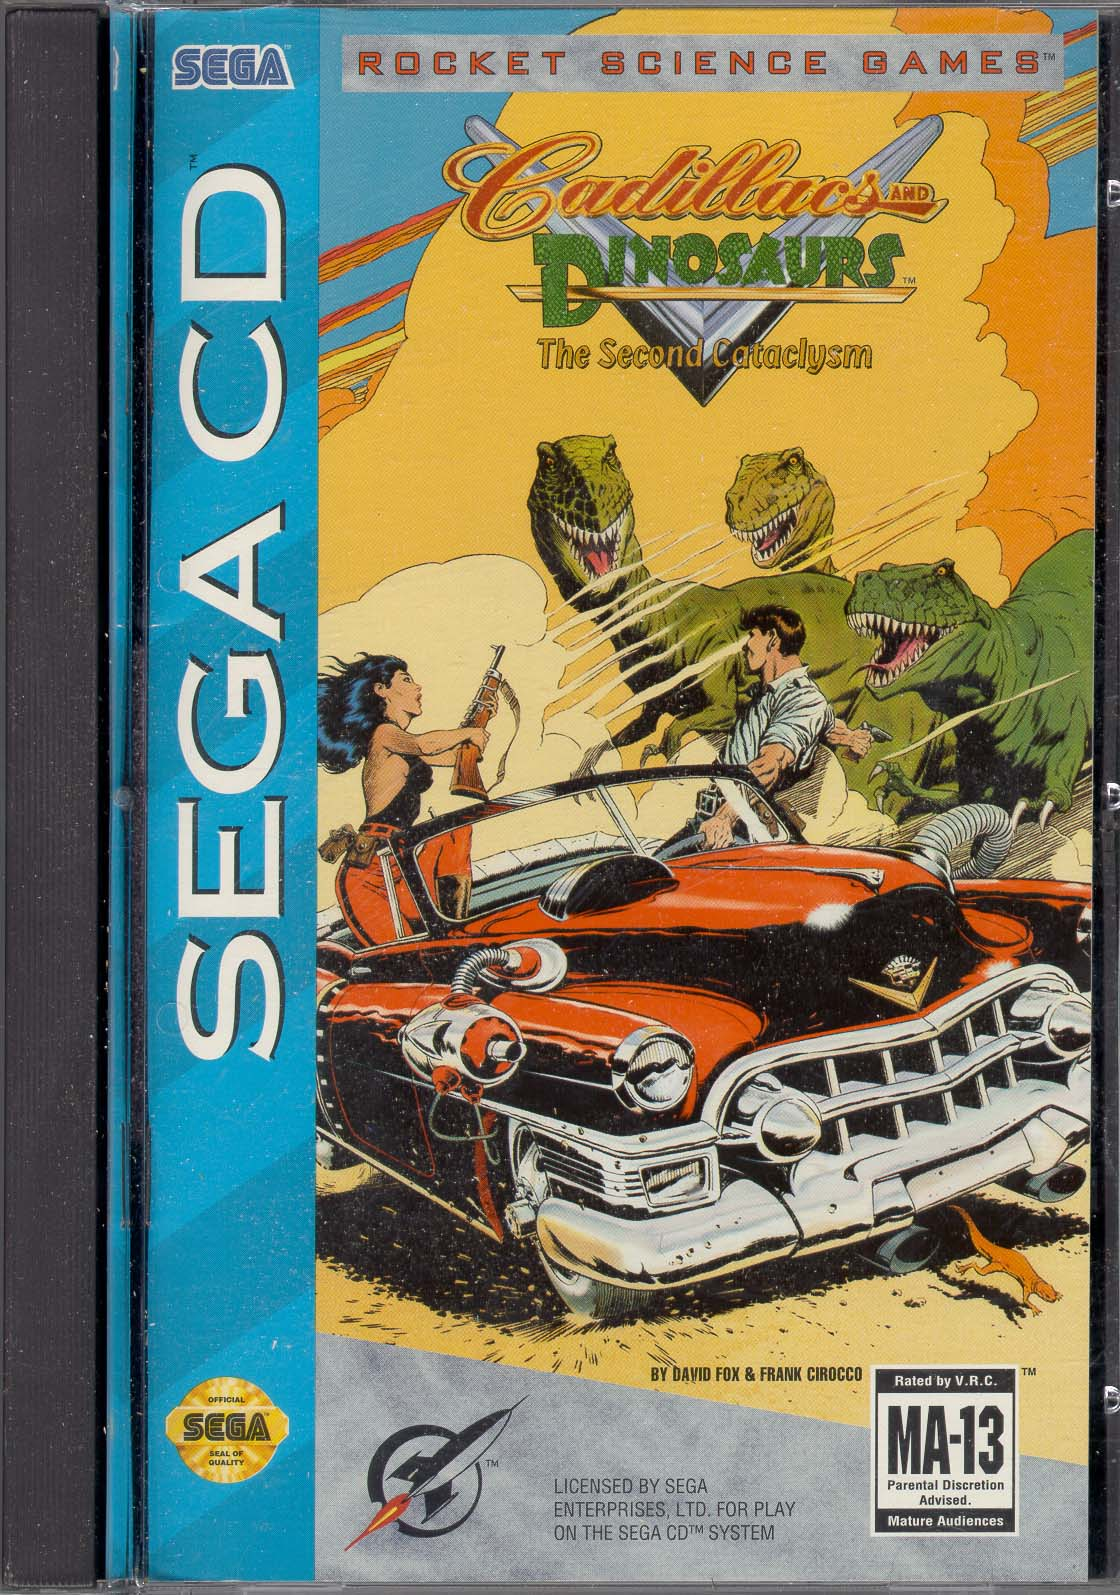 Judge a game by its cover - Page 3 Cadillacs%20&%20Dinosaurs%20-%20The%20Second%20Cataclysm%20(U)%20(Front)